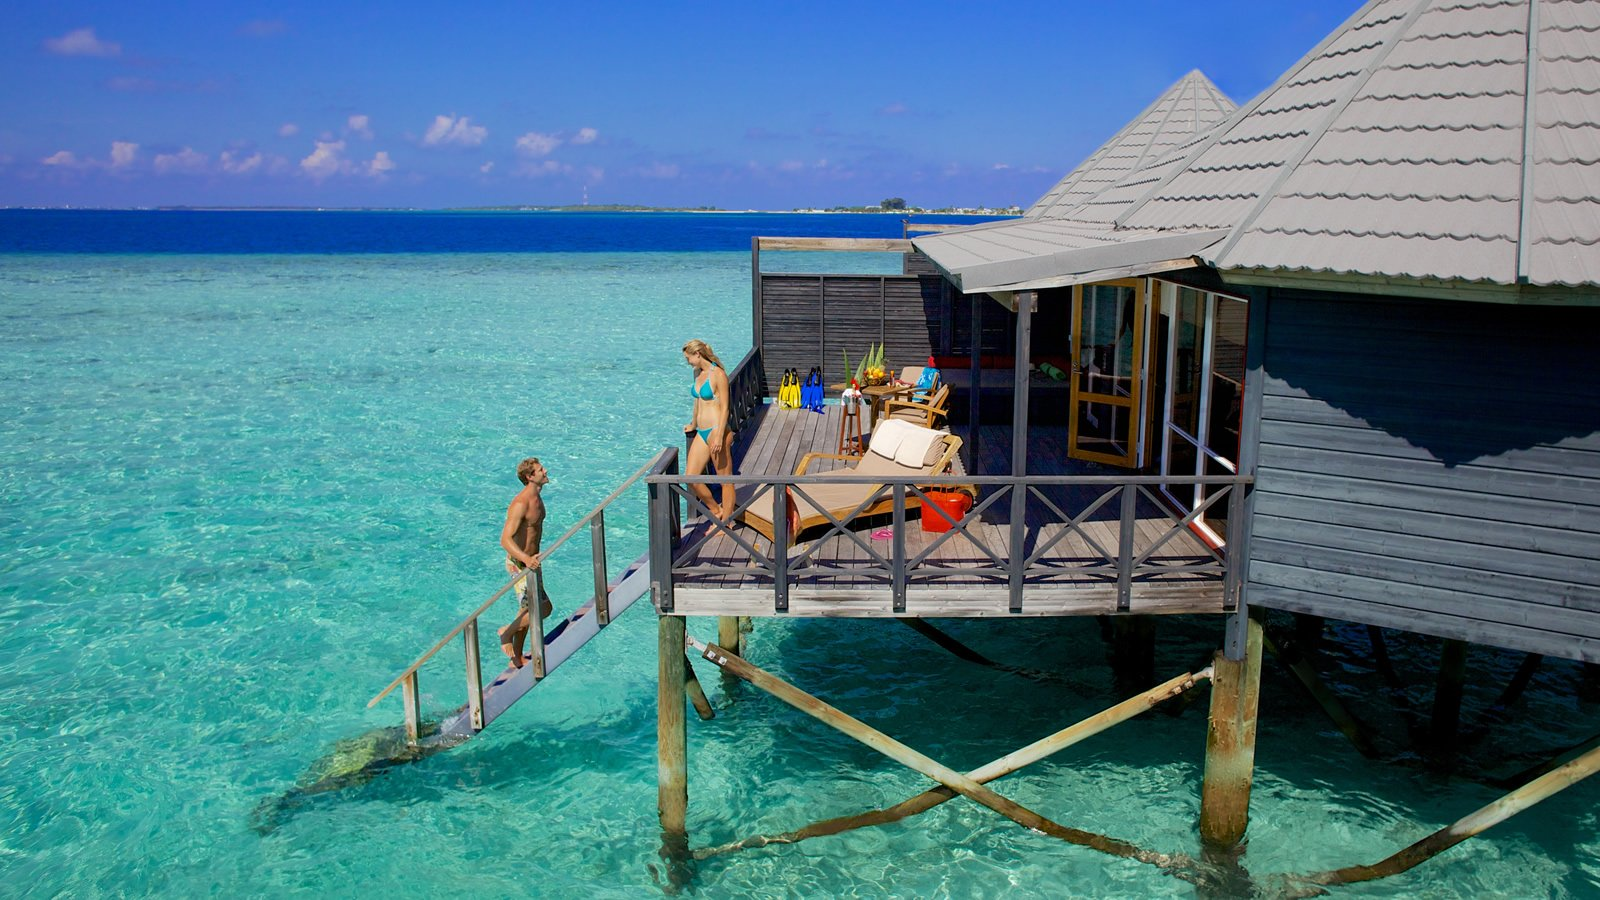 Maldives Adults Only Resort - Romance, Honeymoons & Diving on maldives map india, ayada maldives on map, seychelles resorts map, reunion resorts map, maldives world map, maldives location on map, honolulu resorts map, male maldives map, maldives map google, maldives airport map, turks and caicos islands resorts map, honduras resorts map, bermuda resorts map, maldives climate map, lankanfushi maldives map, falkland islands resorts map, the maldives map, maldives indian ocean map, tahiti resorts map, palawan resorts map,